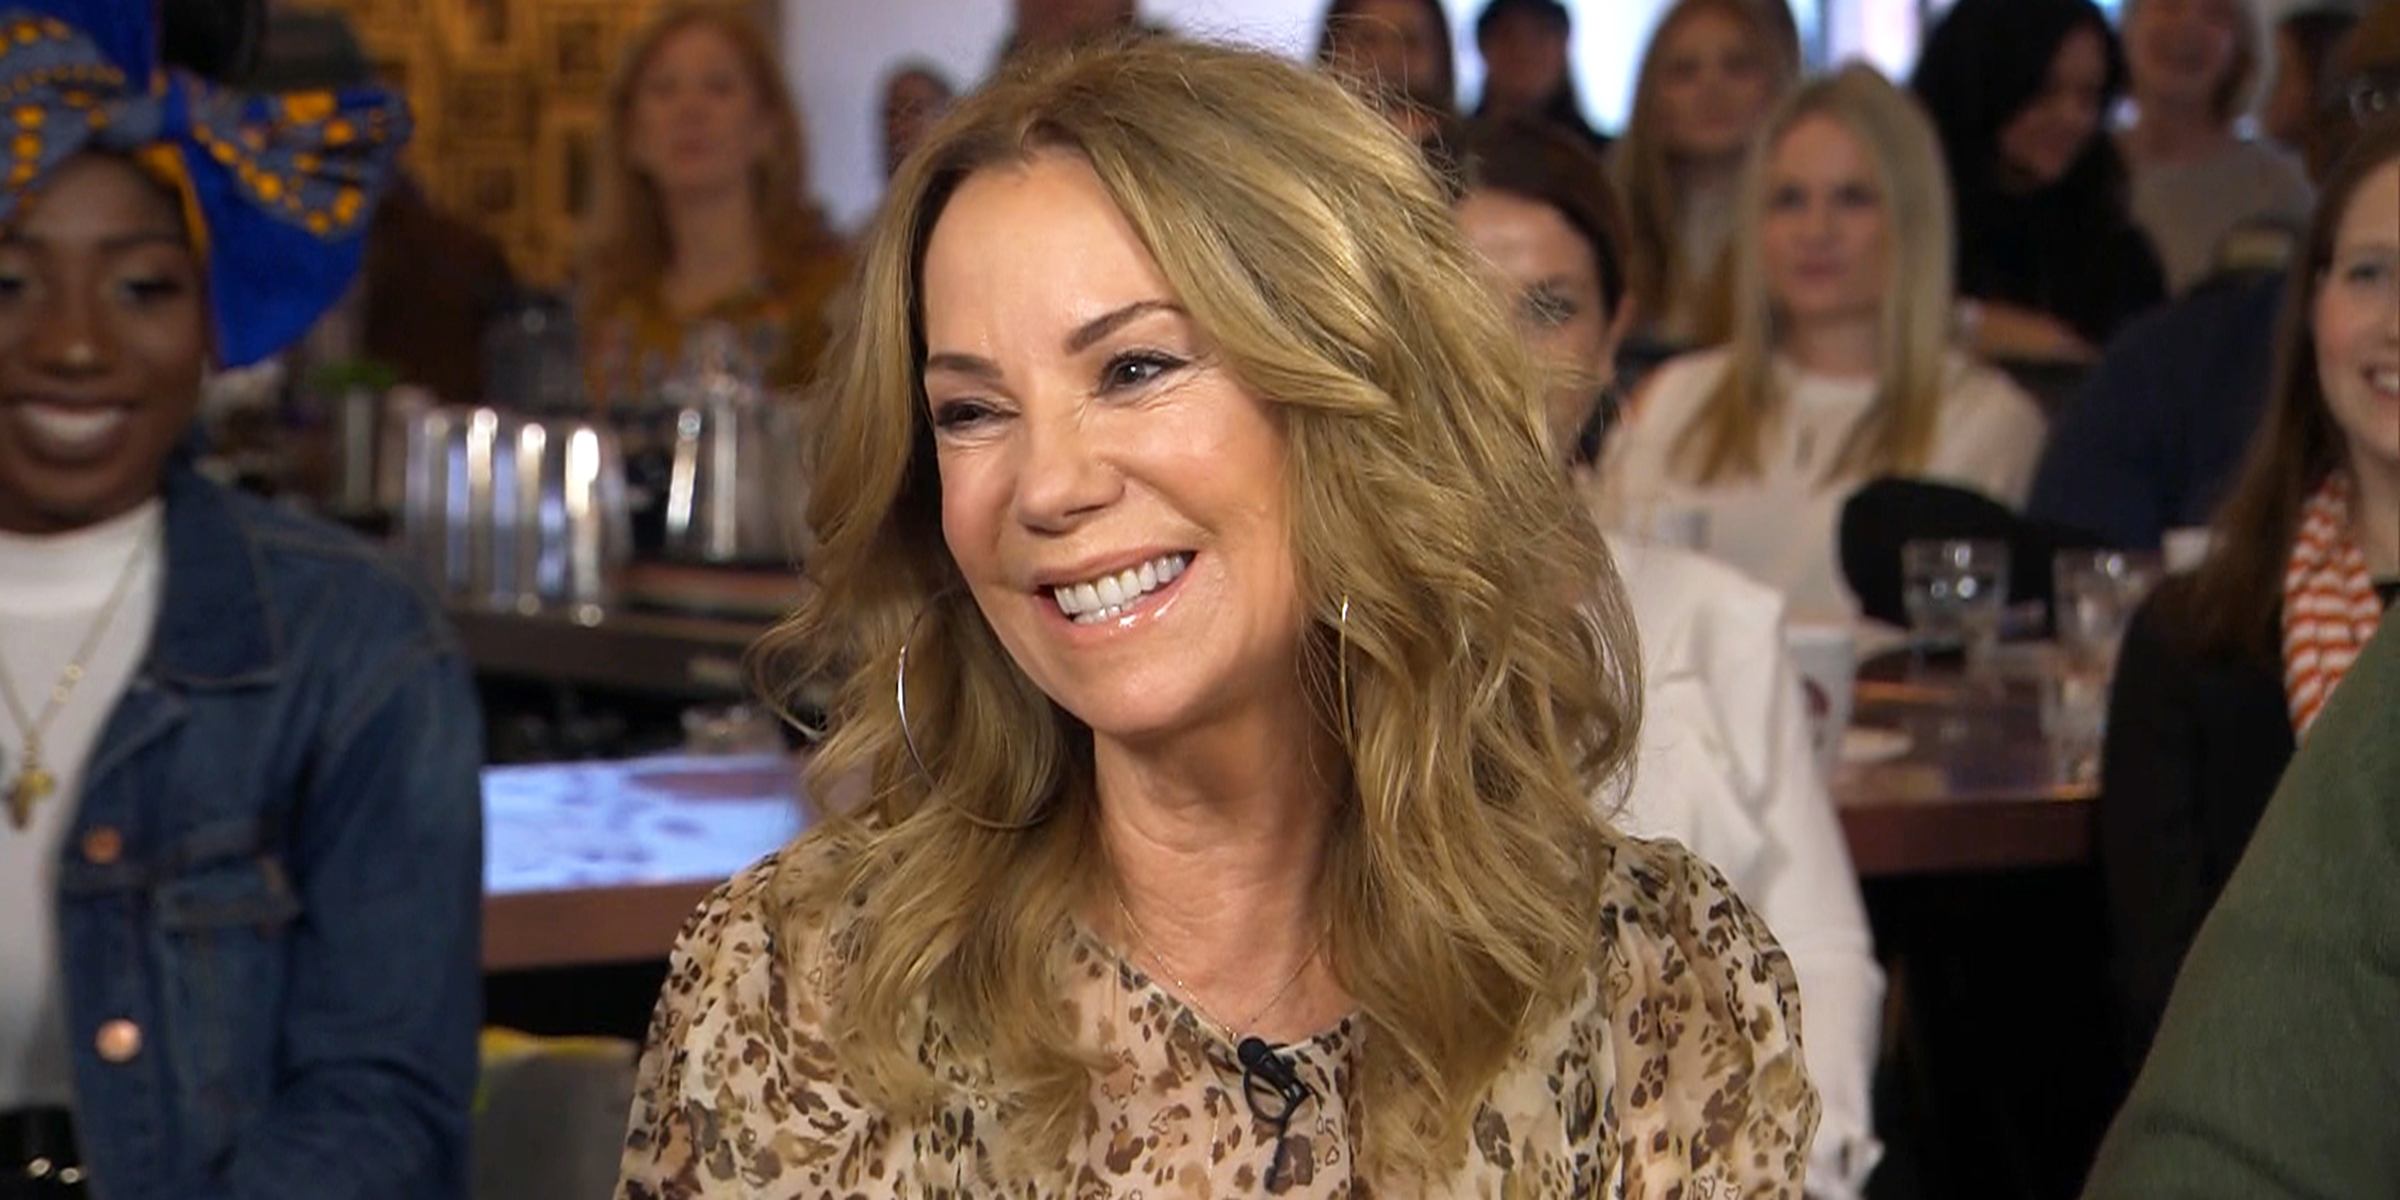 Kathie Lee Gifford Talk About Her Kids Getting Married